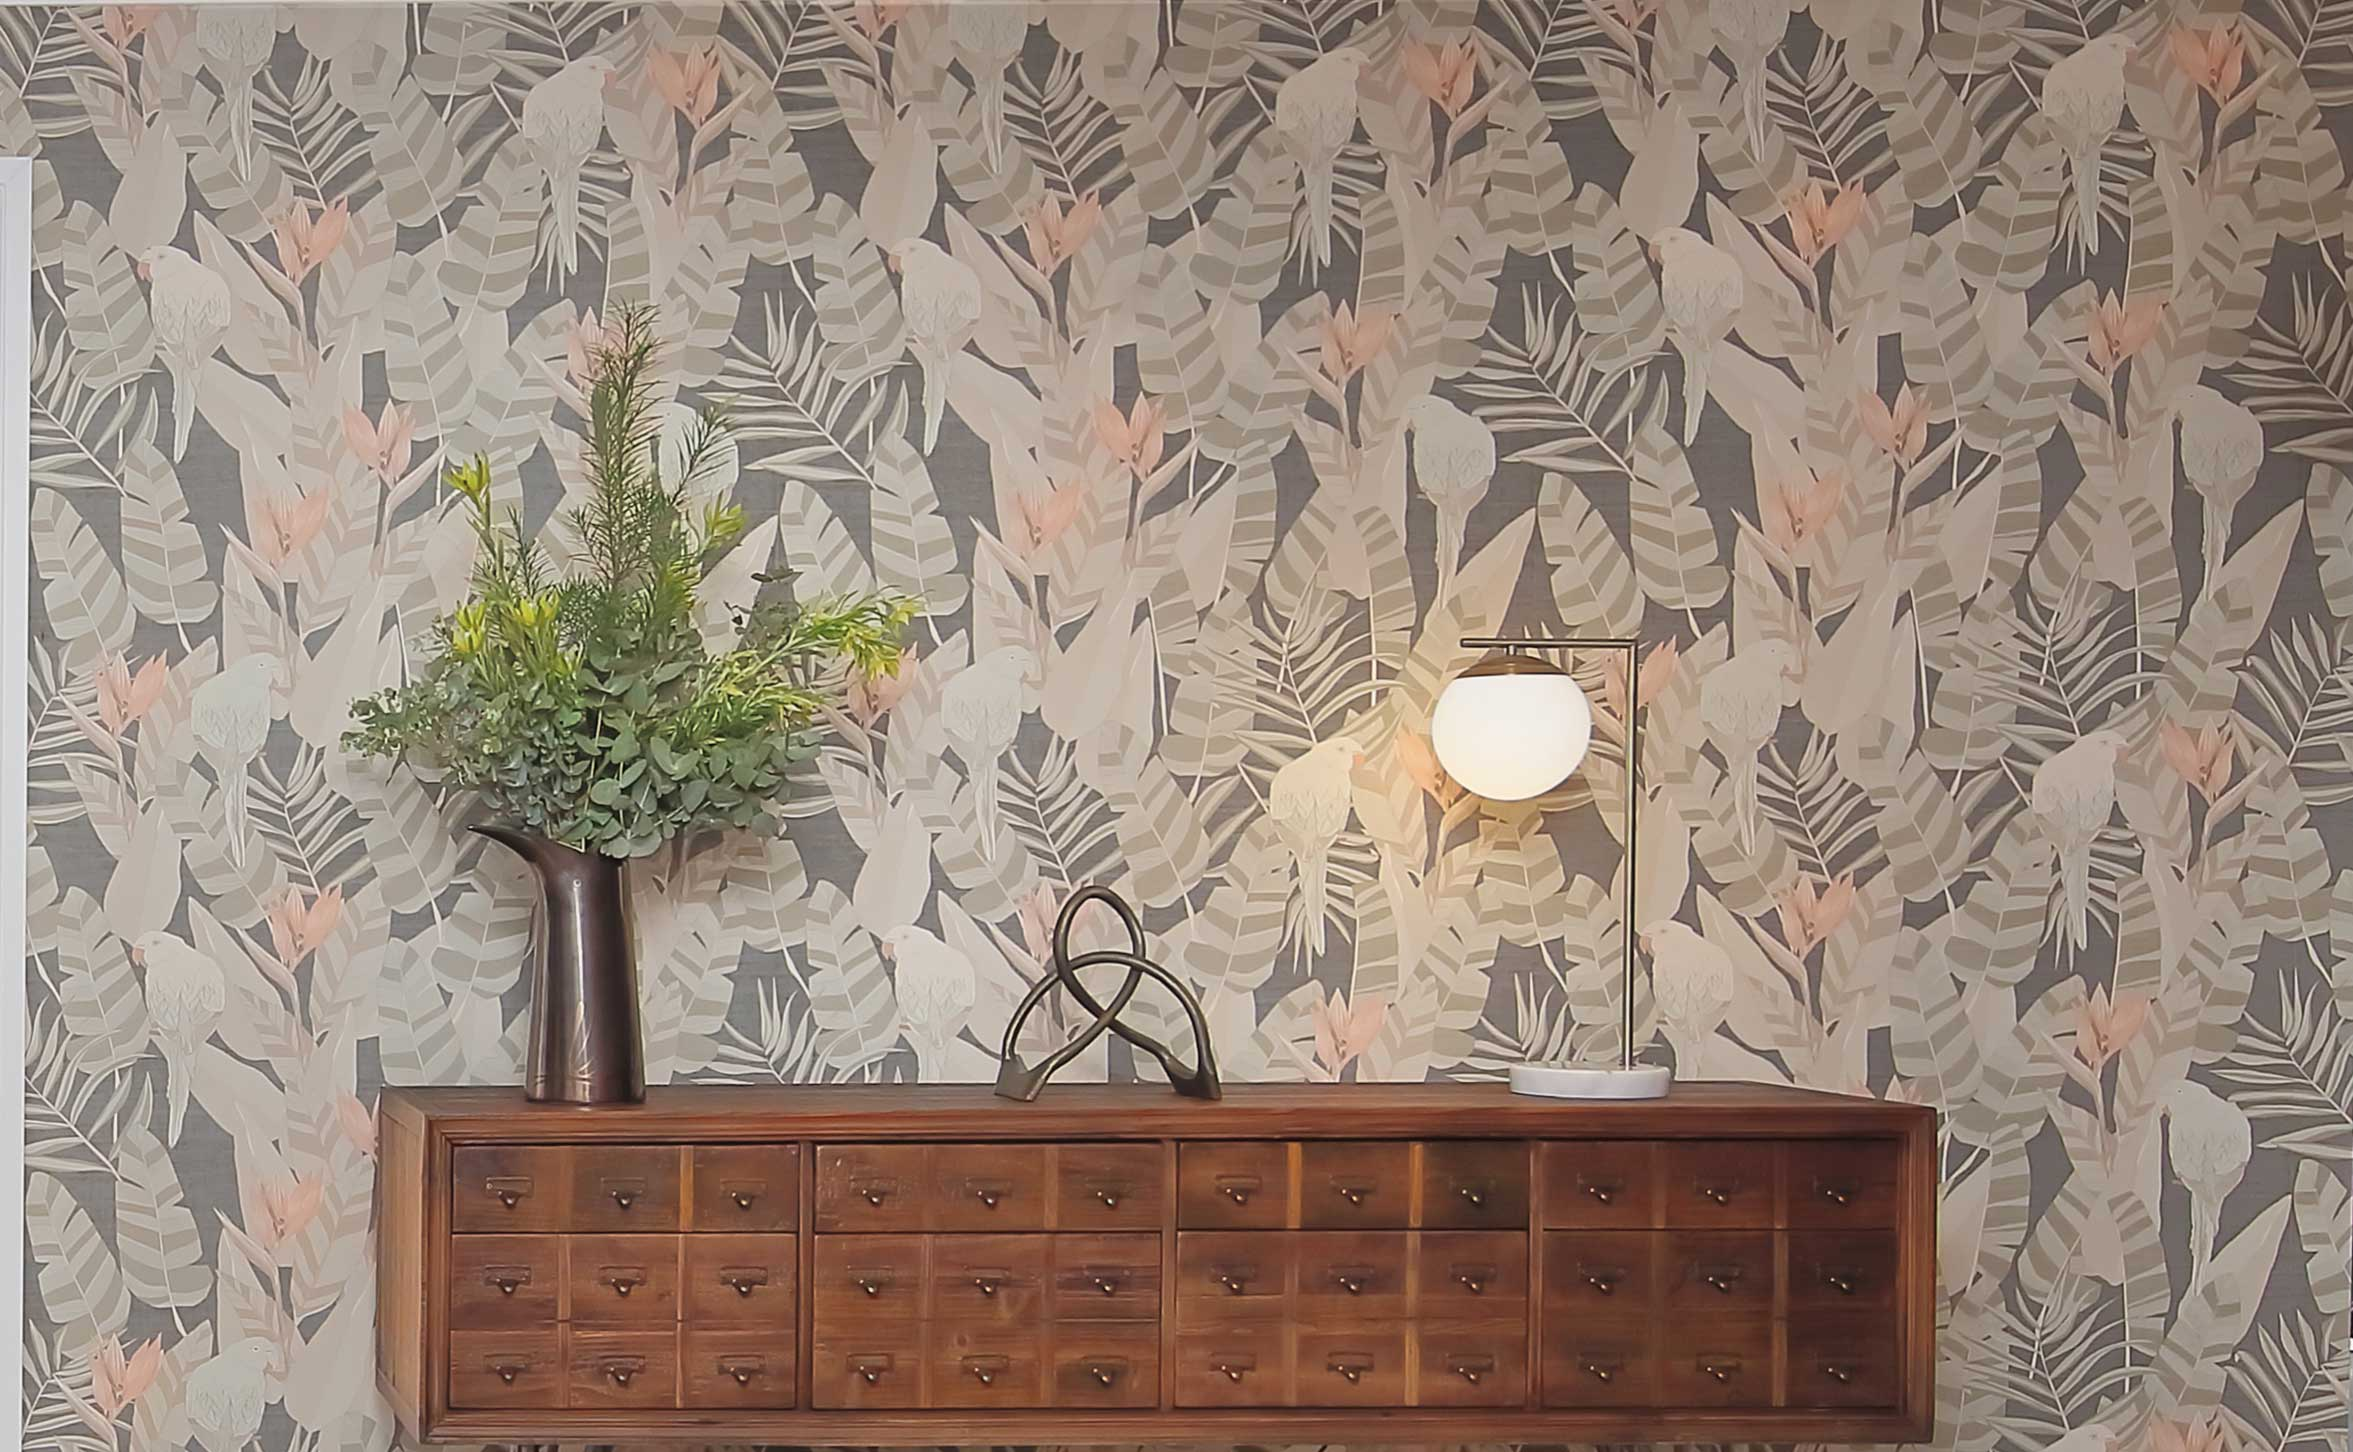 Wallpaper birds and leaves